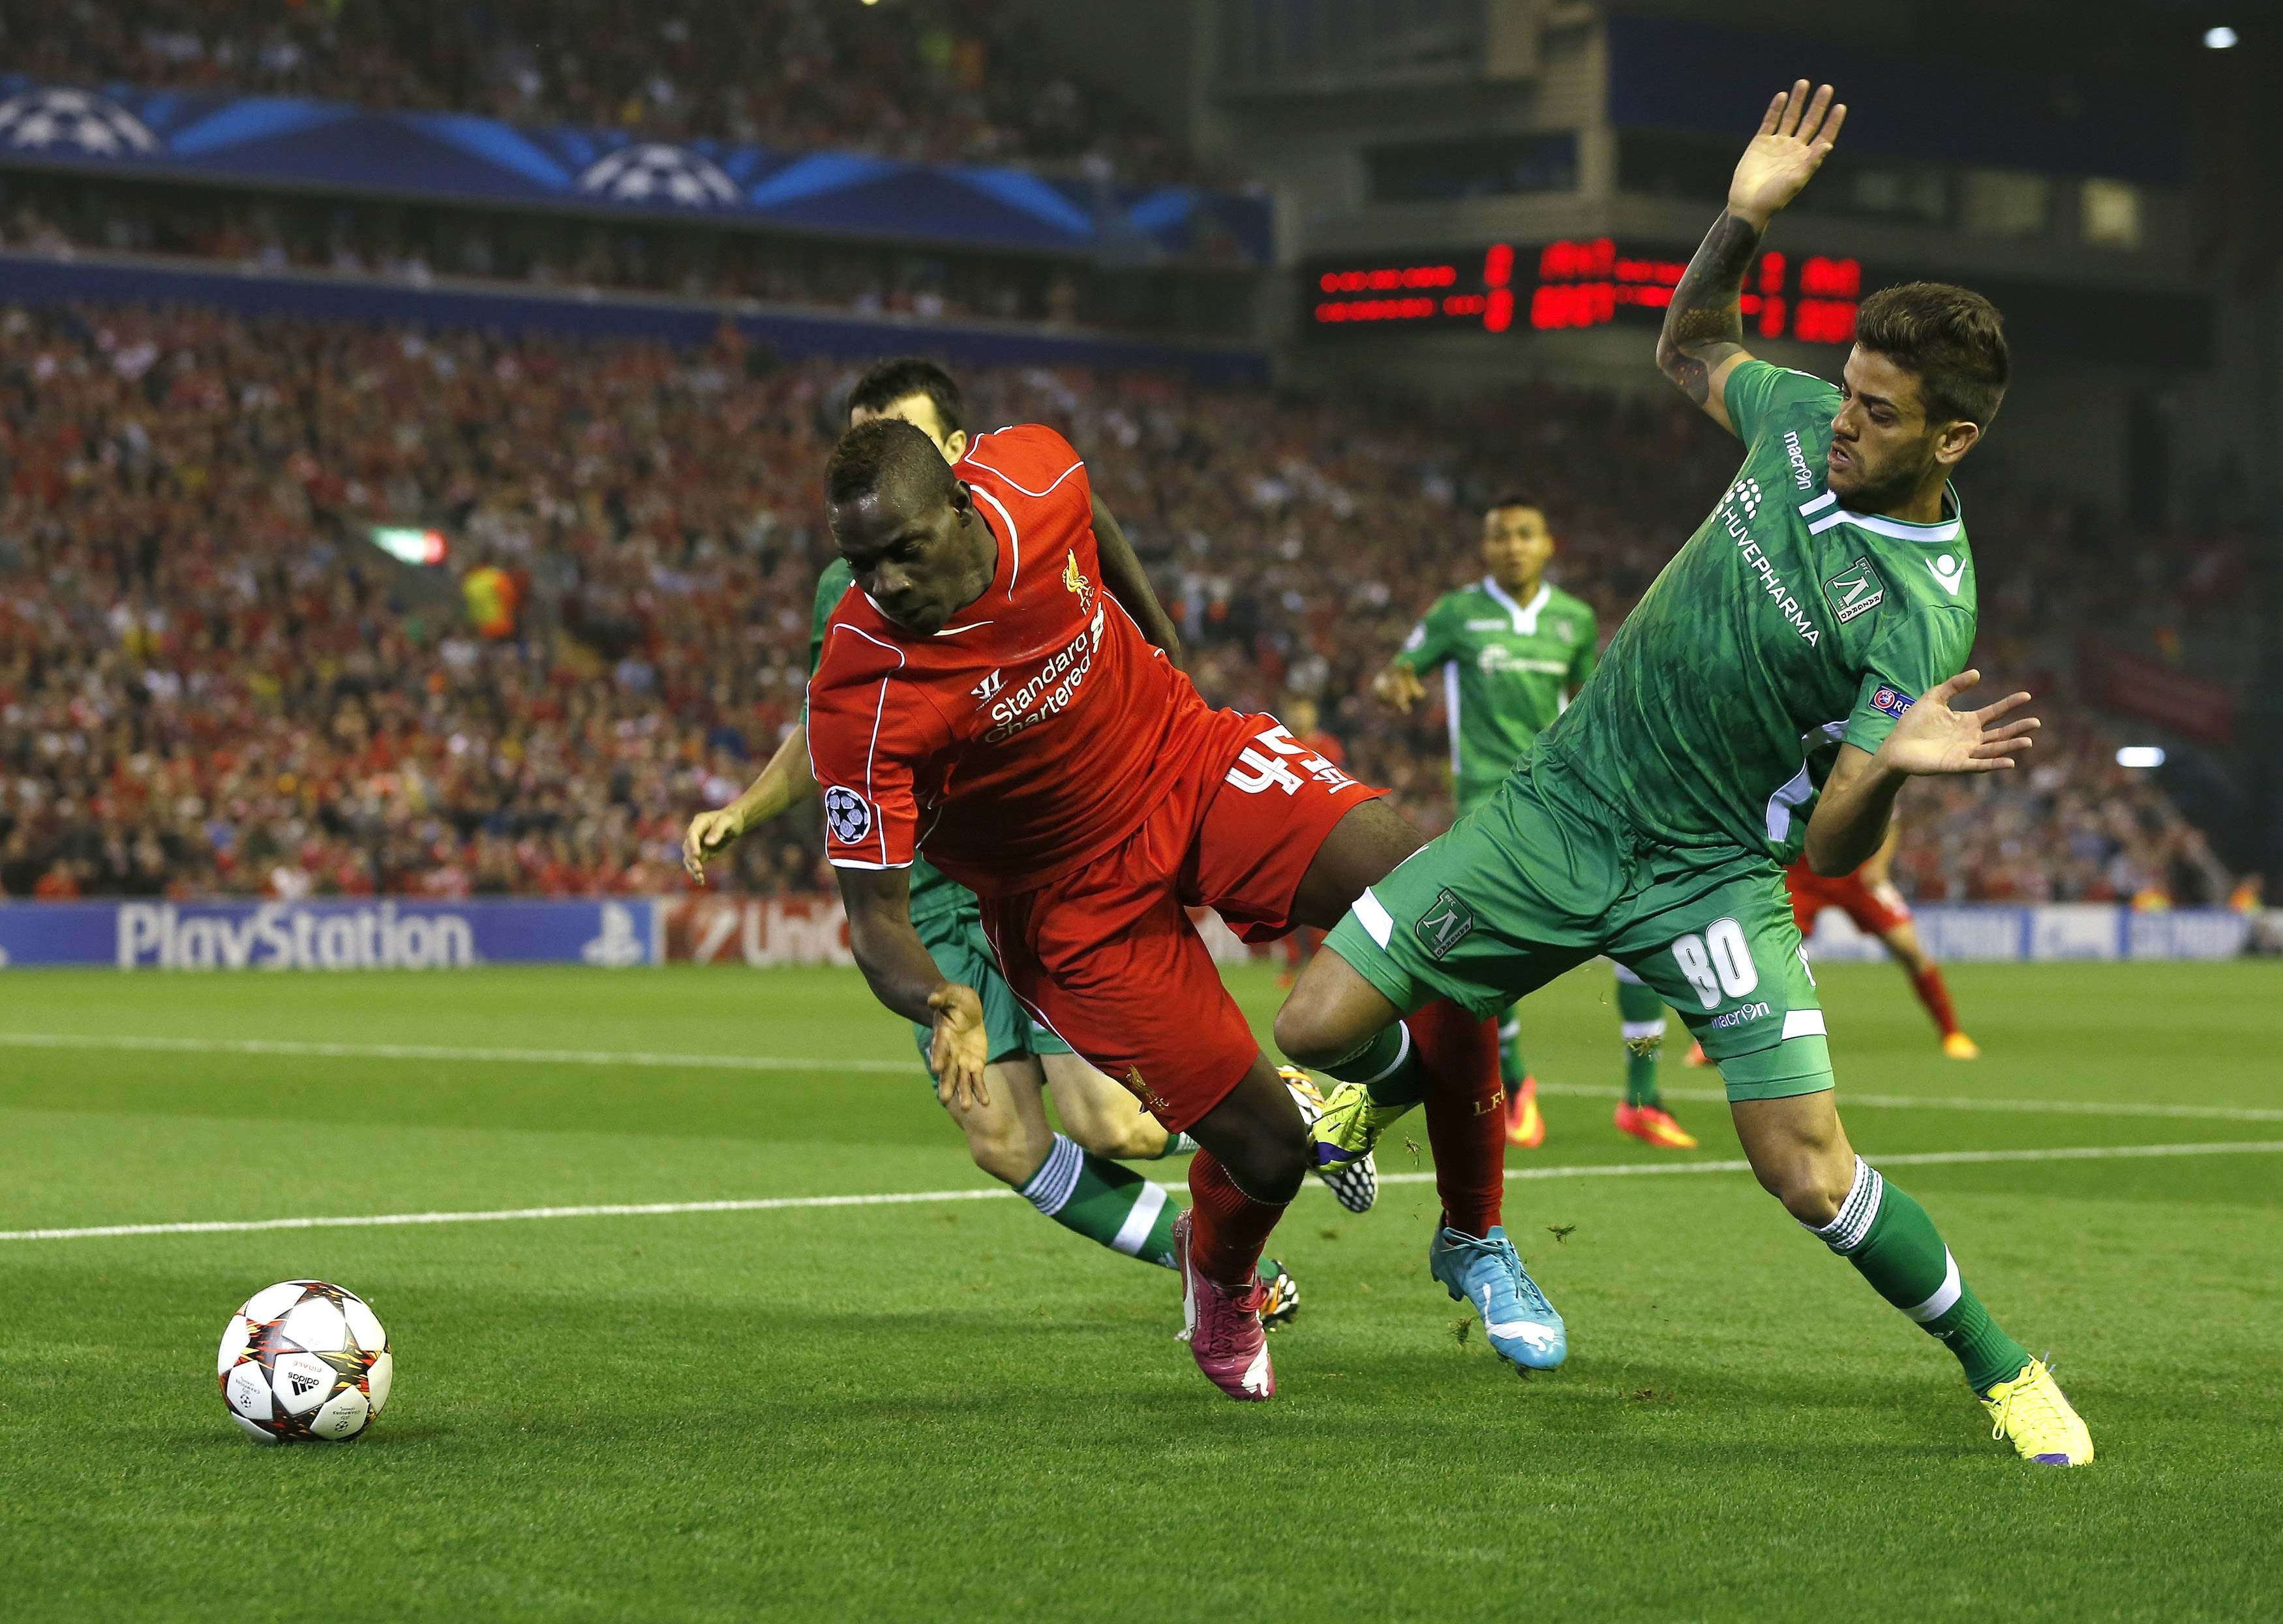 Liverpool's Mario Balotelli (L) is fouled by Ludogorets' Junior Caicara during their Champions League soccer match at Anfield in Liverpool, northern England September 16, 2014. REUTERS/Phil Noble (BRITAIN - Tags: SPORT SOCCER) Foto: PHIL NOBLE/REUTERS